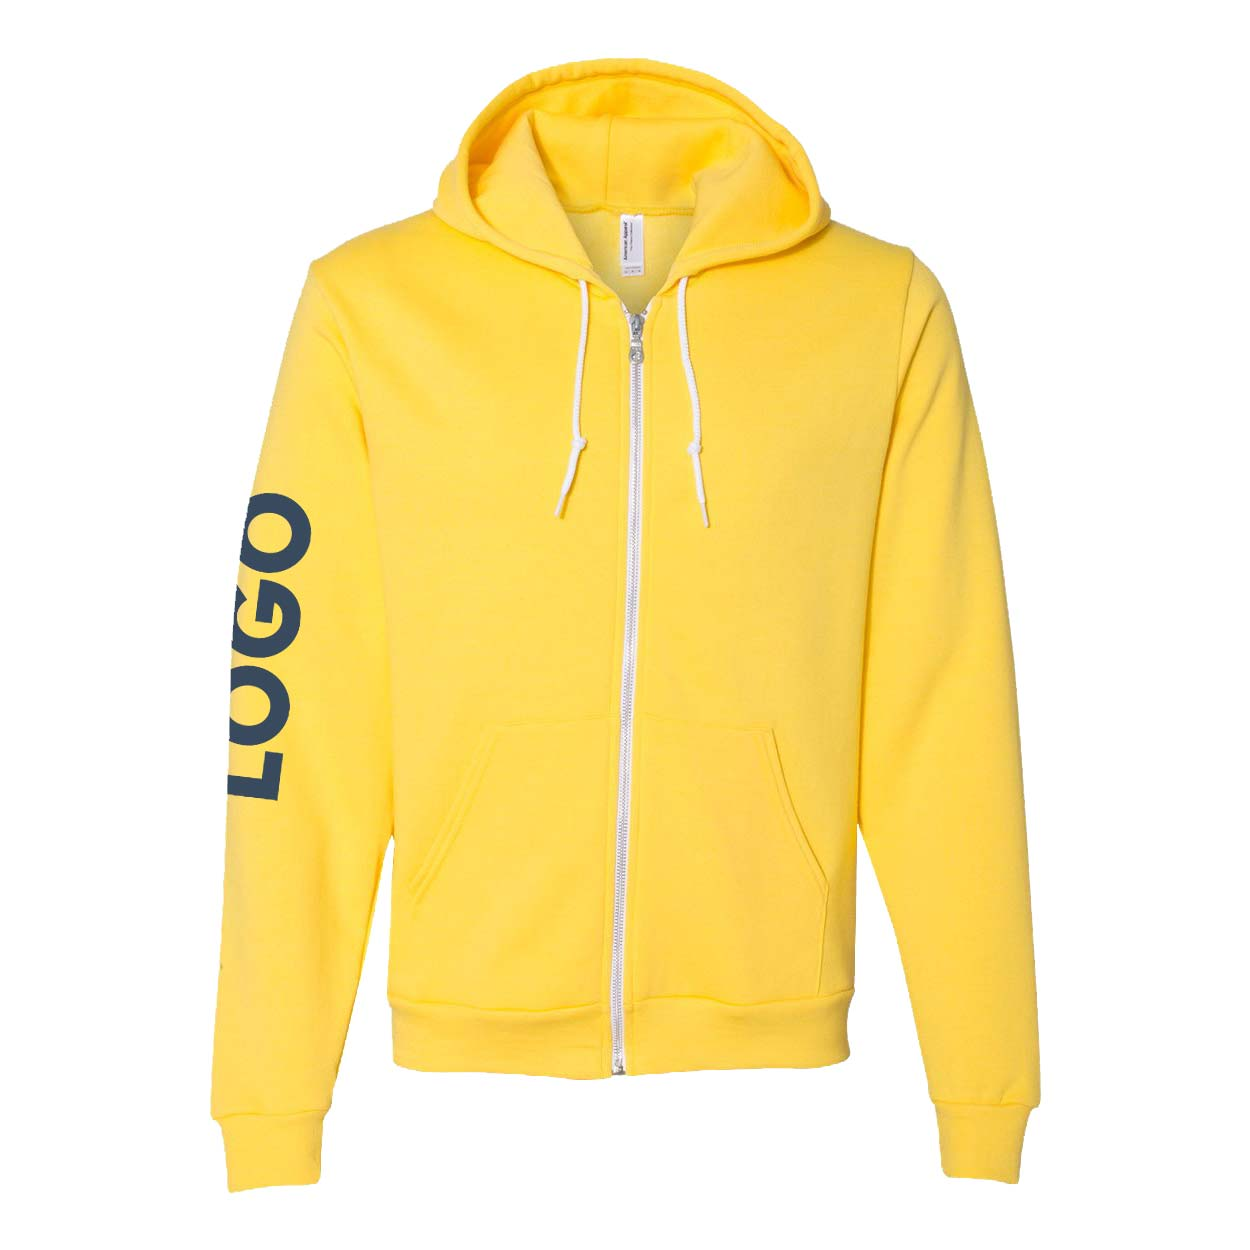 313905 unisex flex fleece zip hoodie one color imprint one location